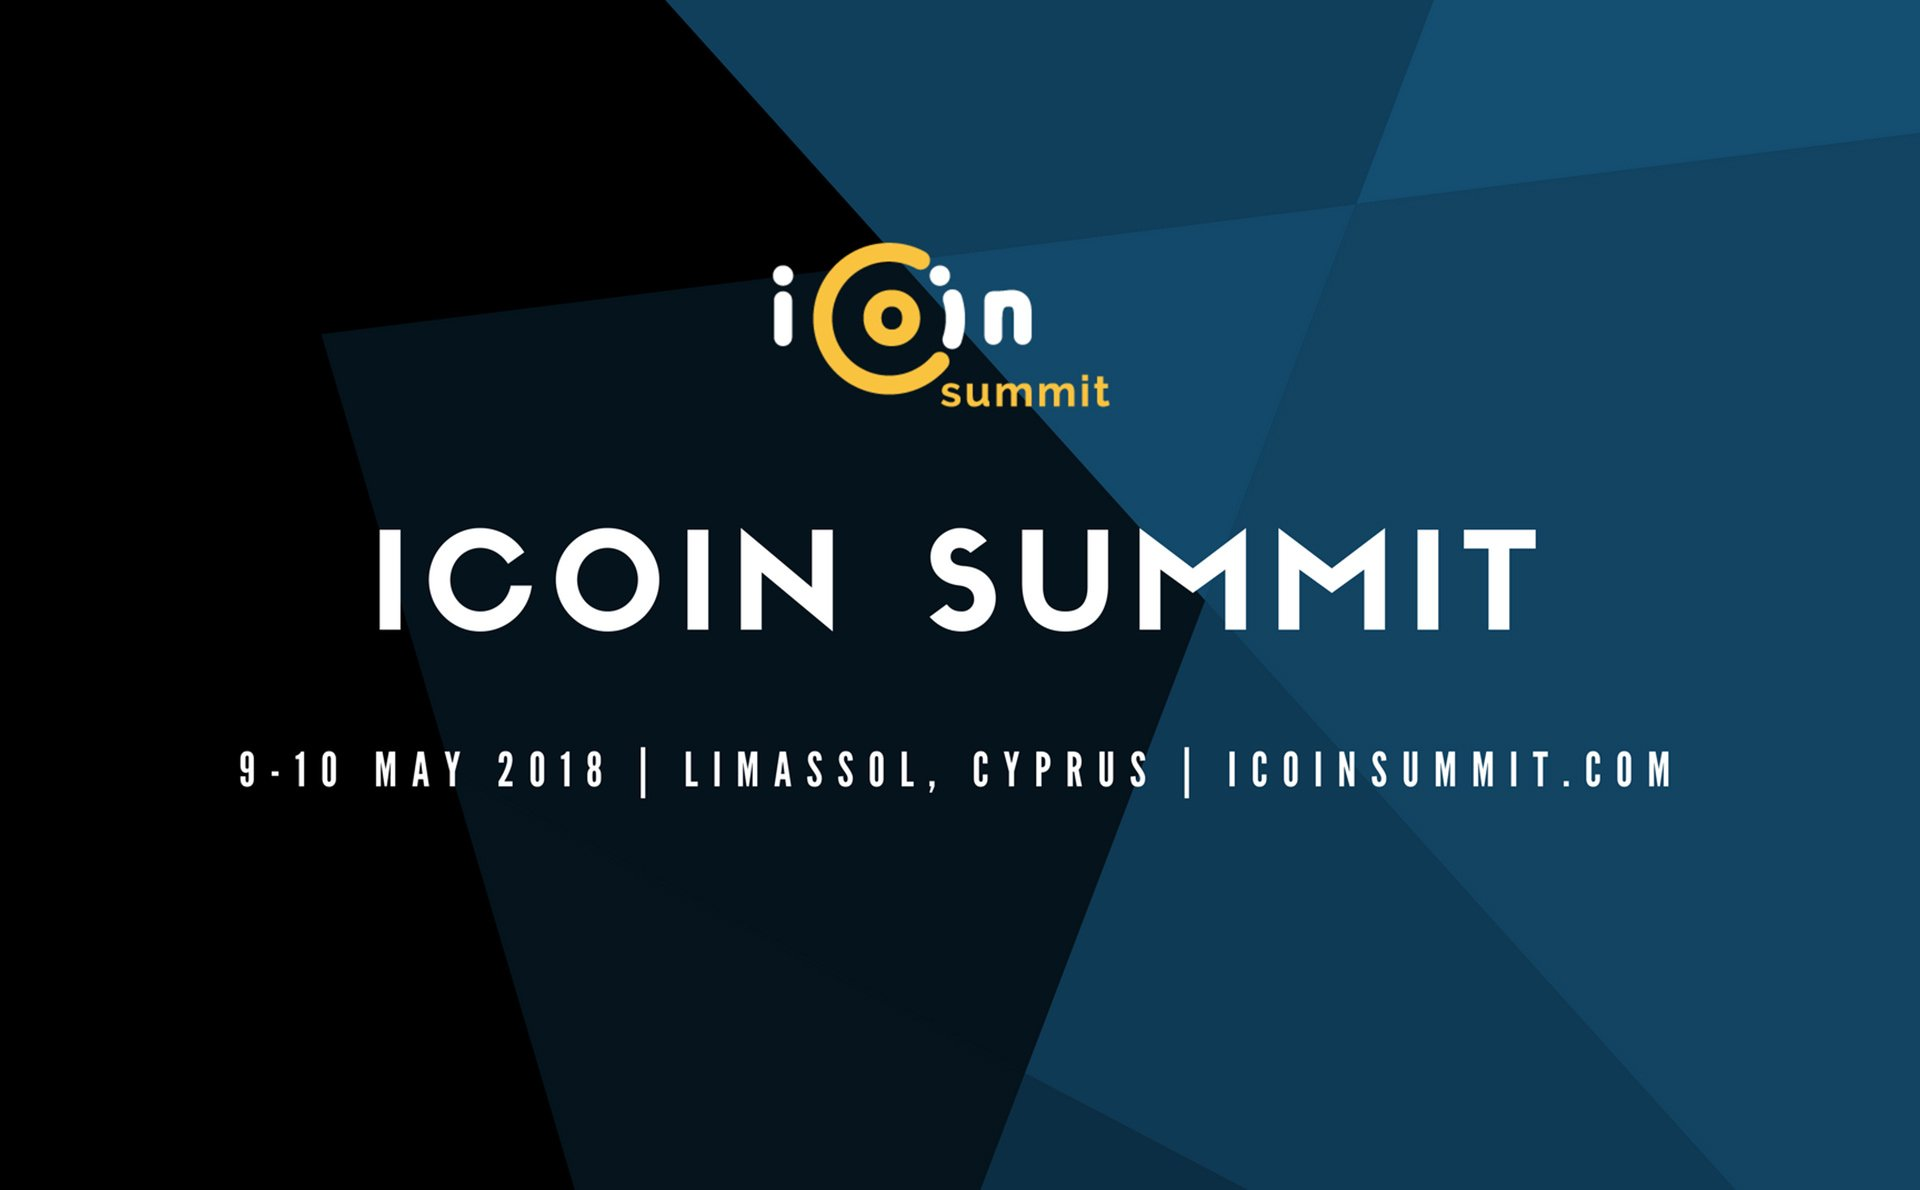 The Biggest ICO Event Heading to Cyprus – Featuring a Stellar Line Up of Speakers and the First Ever ICO Battle with a Live Prize